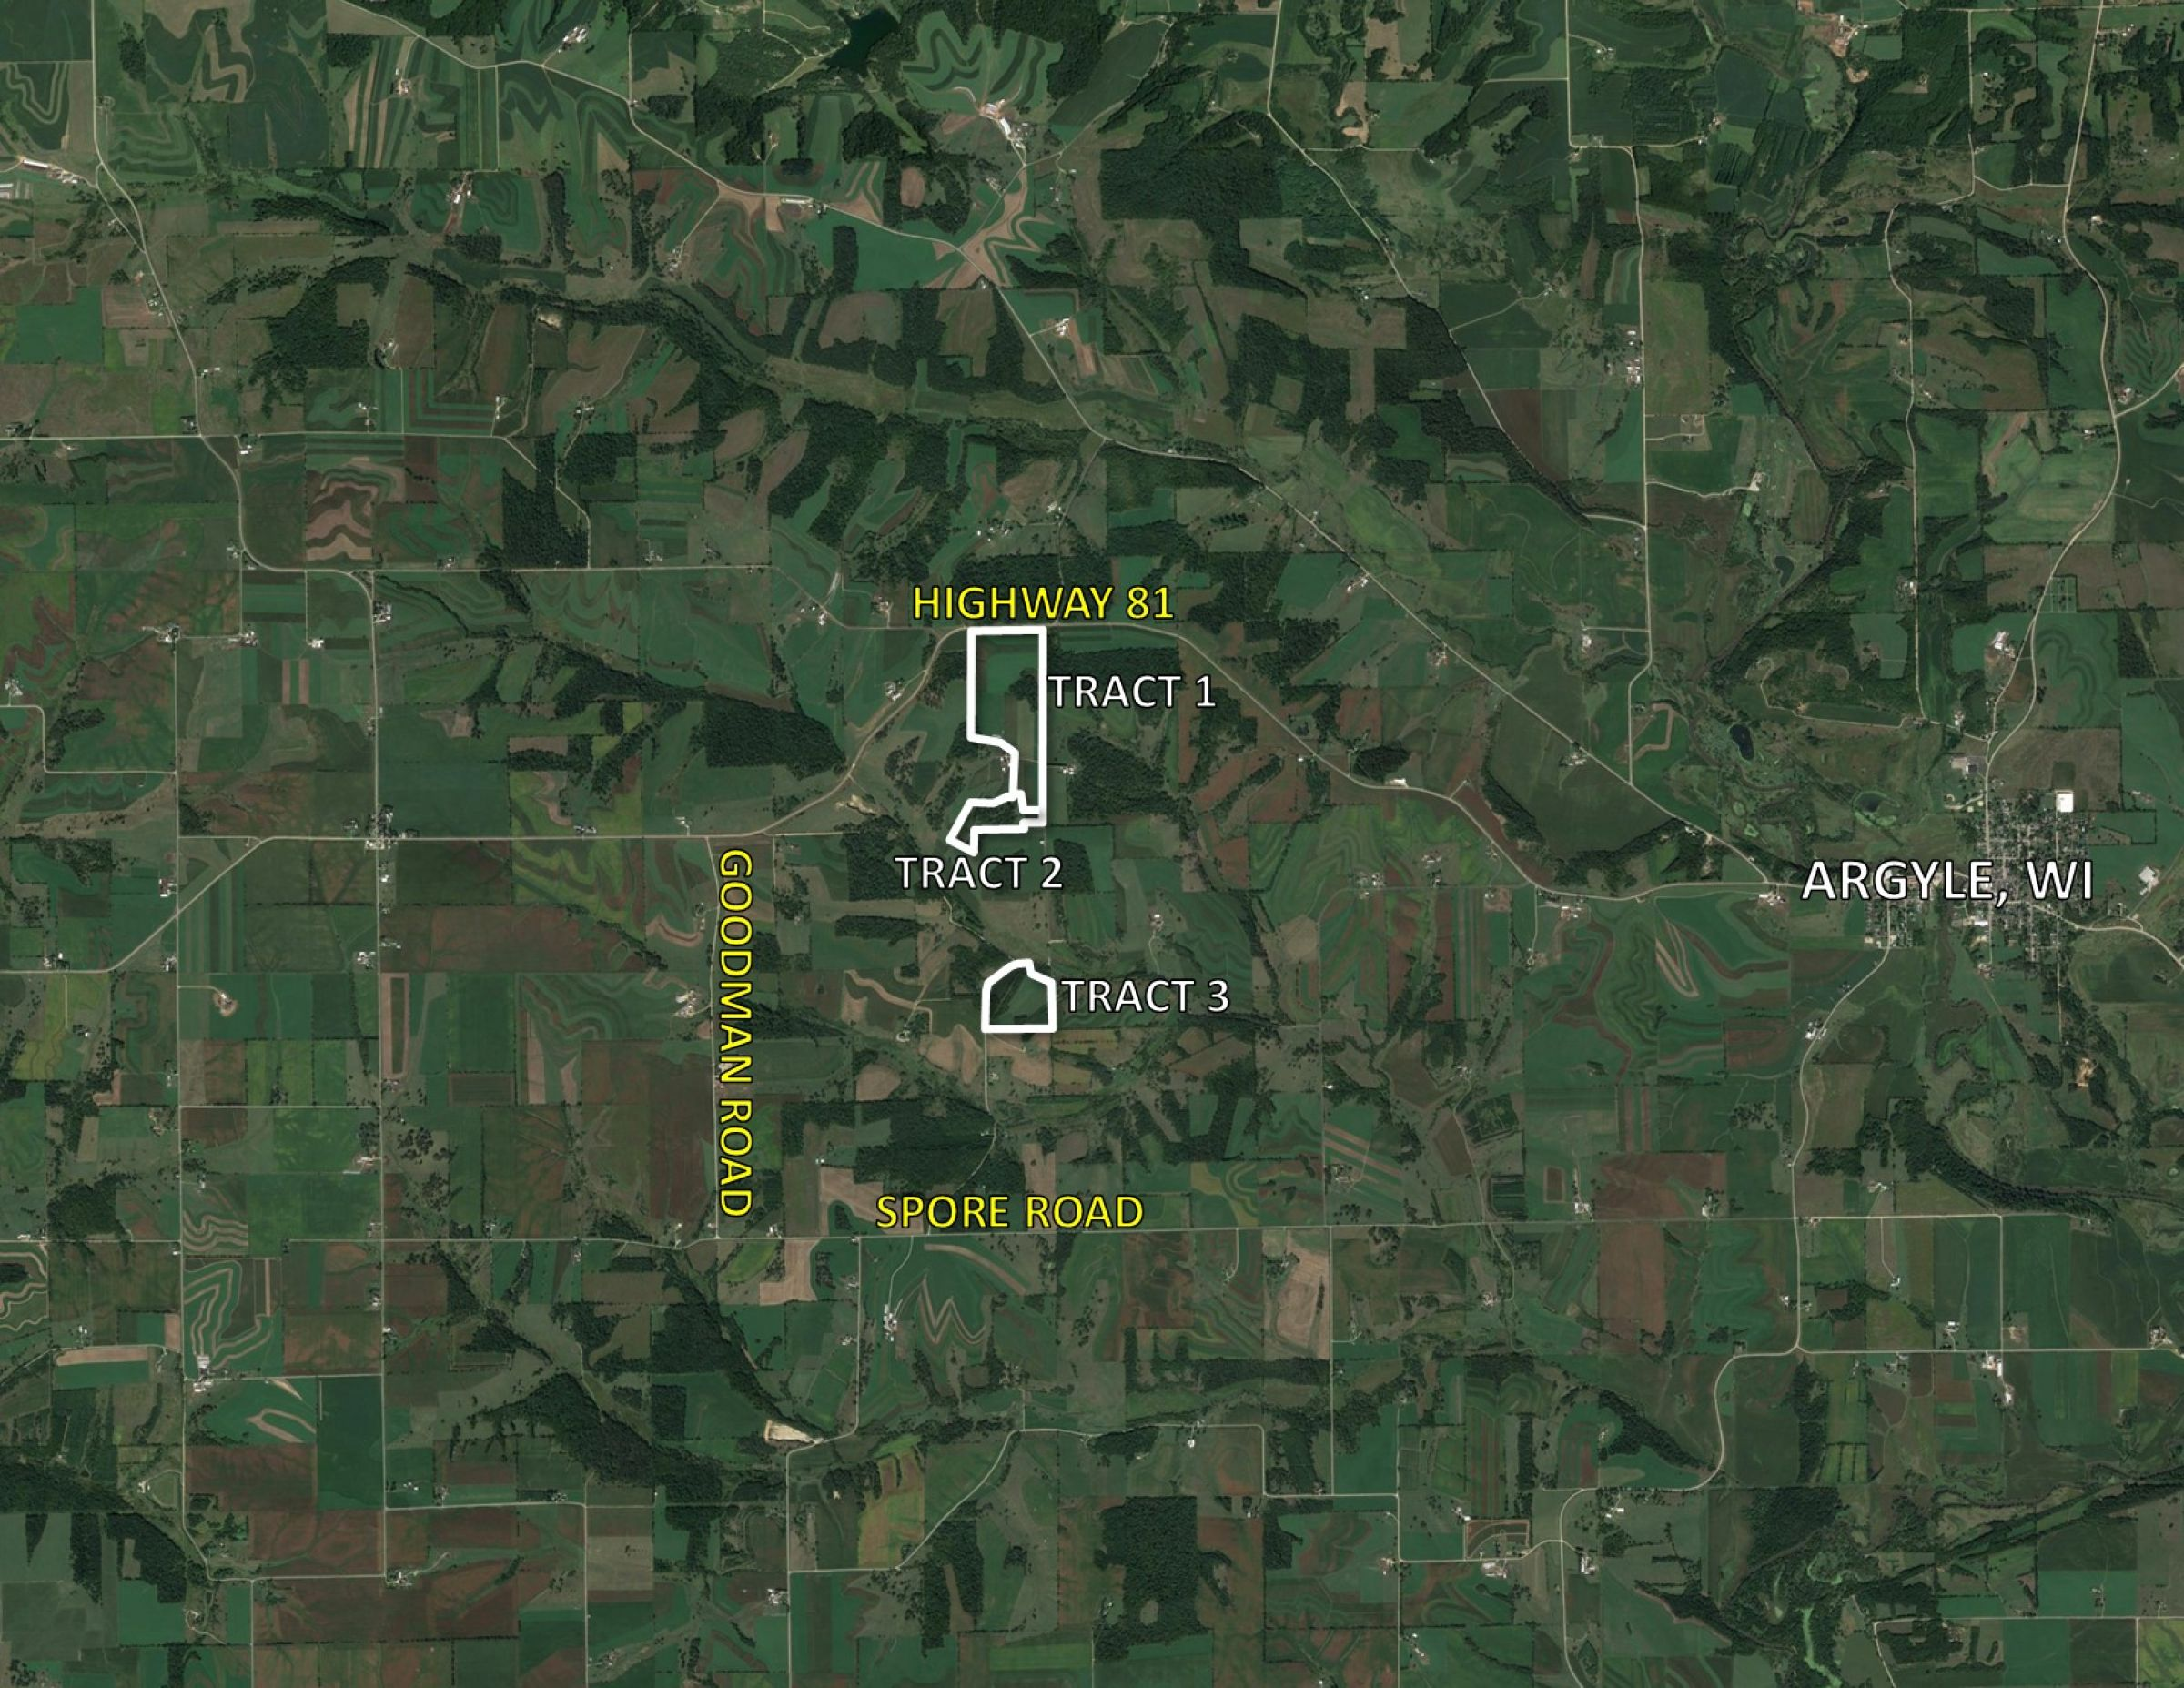 auctions-land-lafayette-county-wisconsin-138-acres-listing-number-15758-1-2021-09-29-211438.jpg